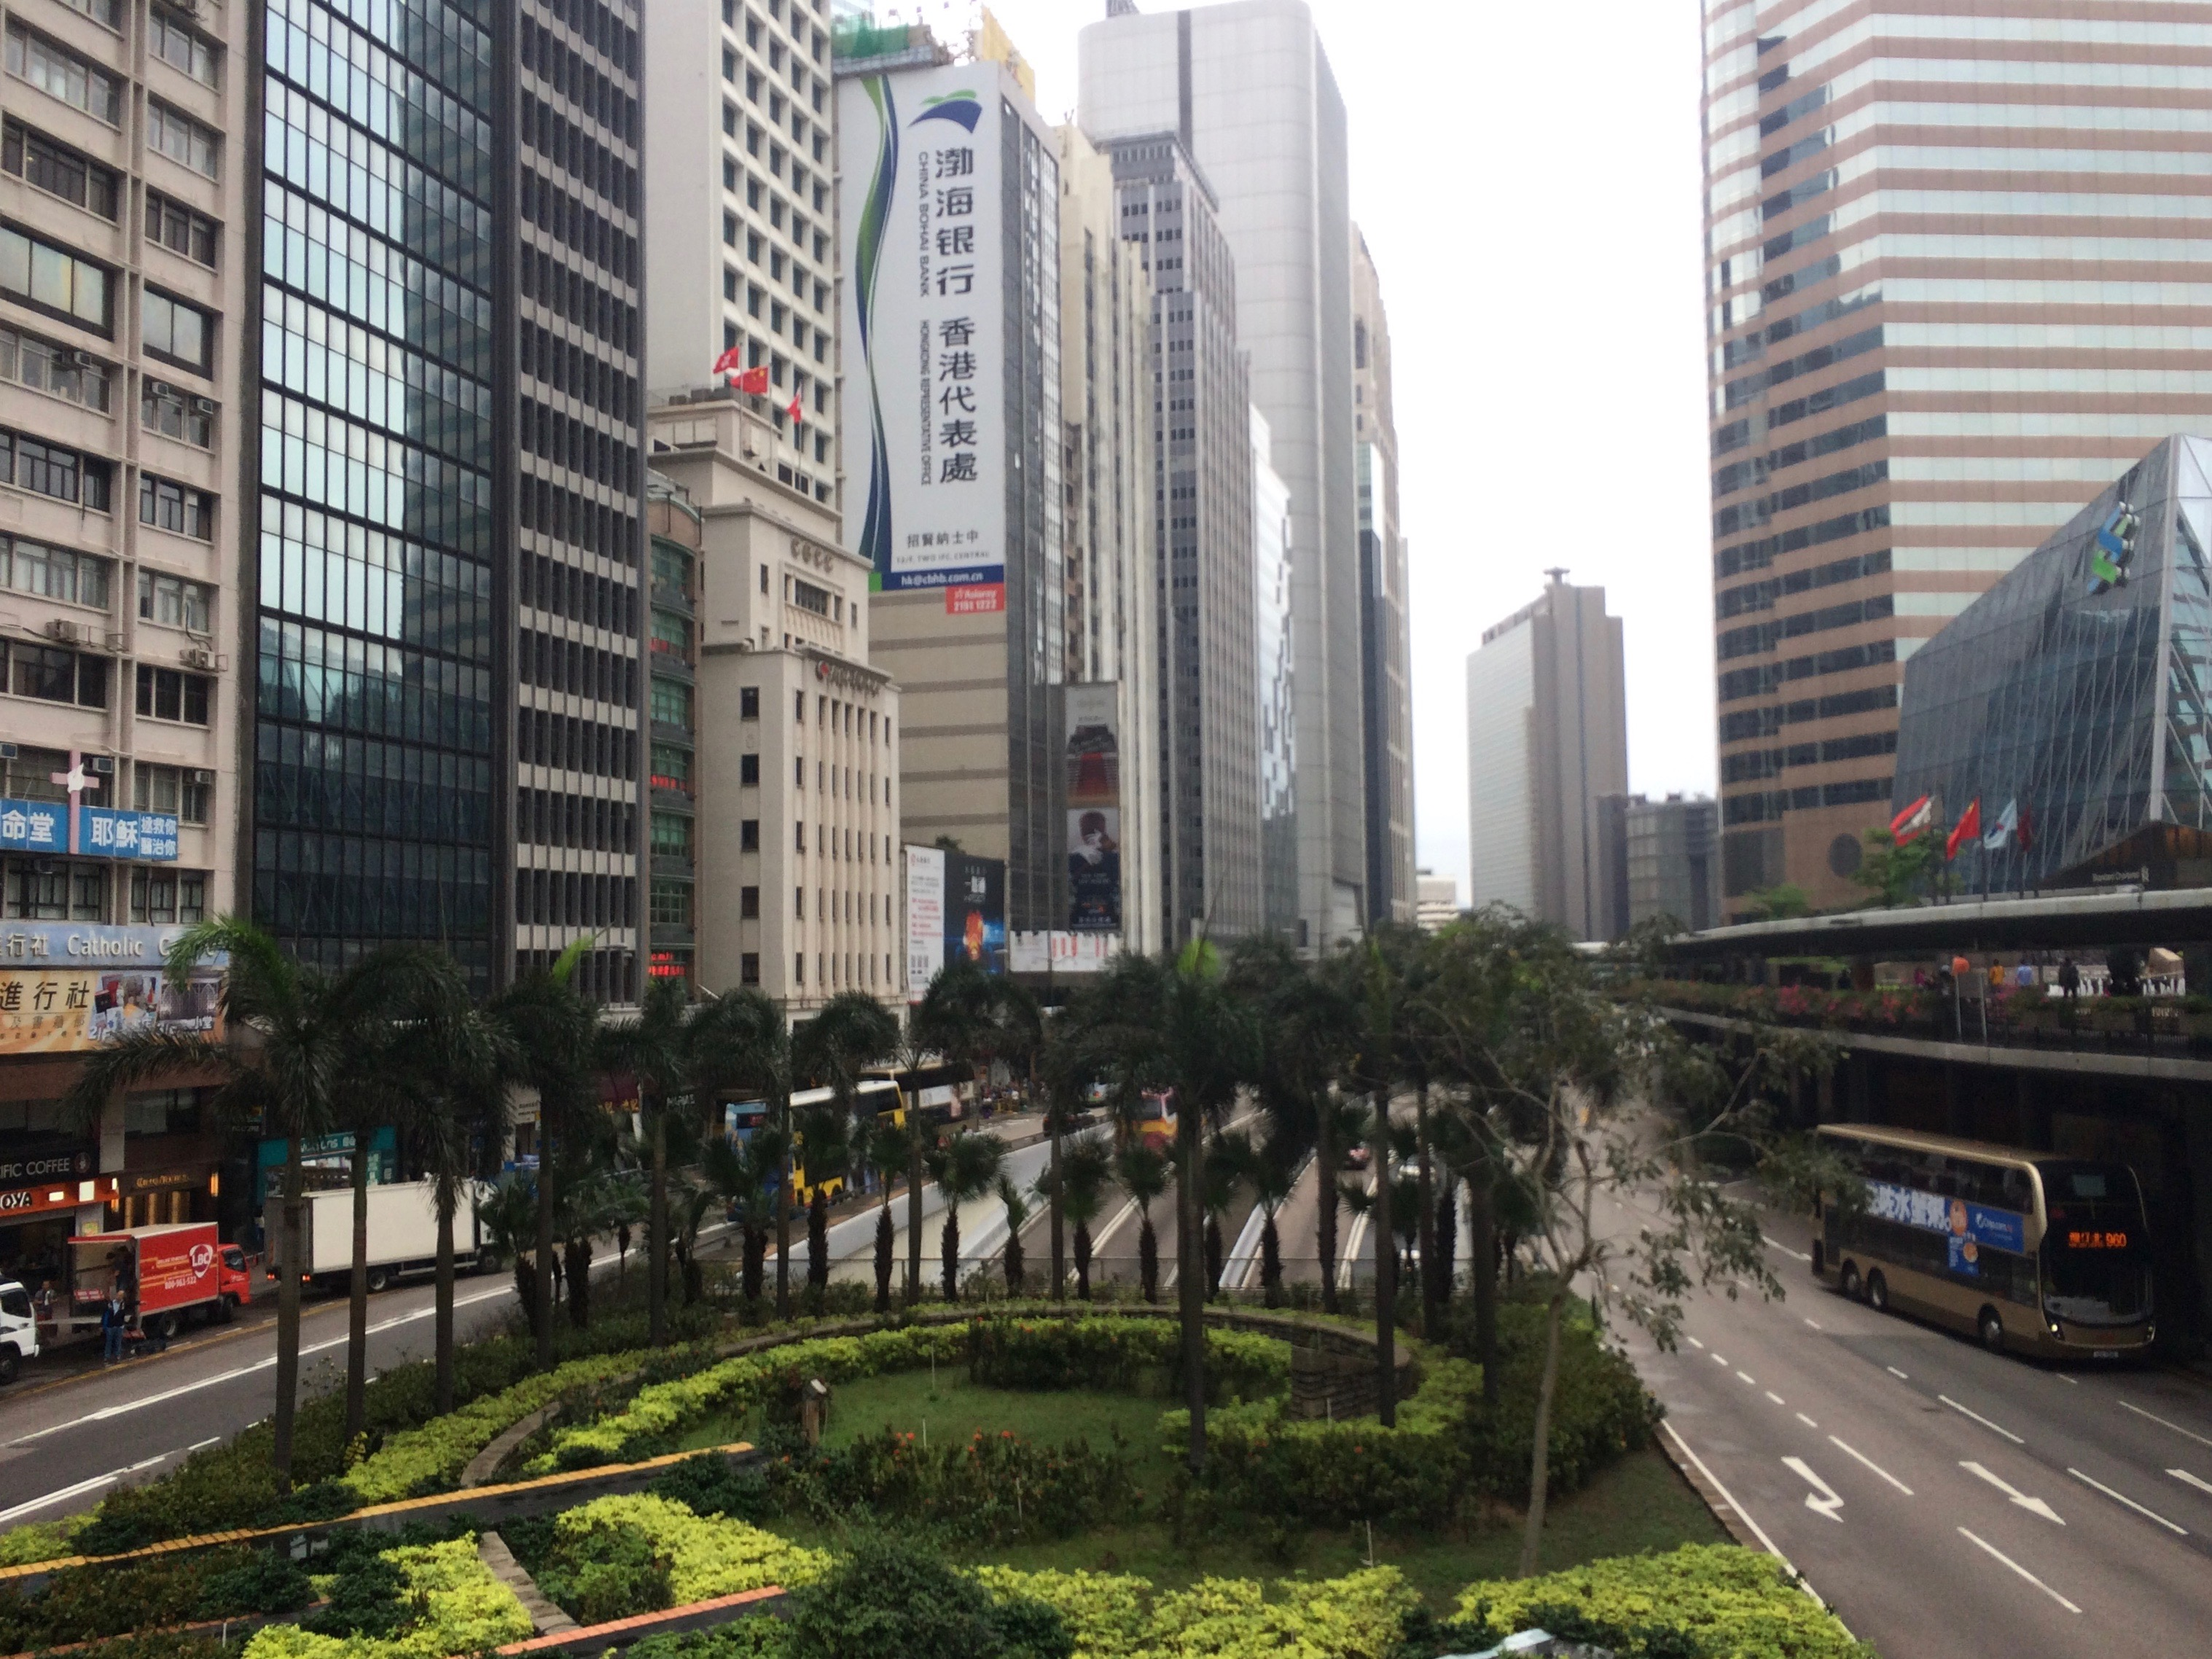 View of the Hong Kong. Tall buildings and streets